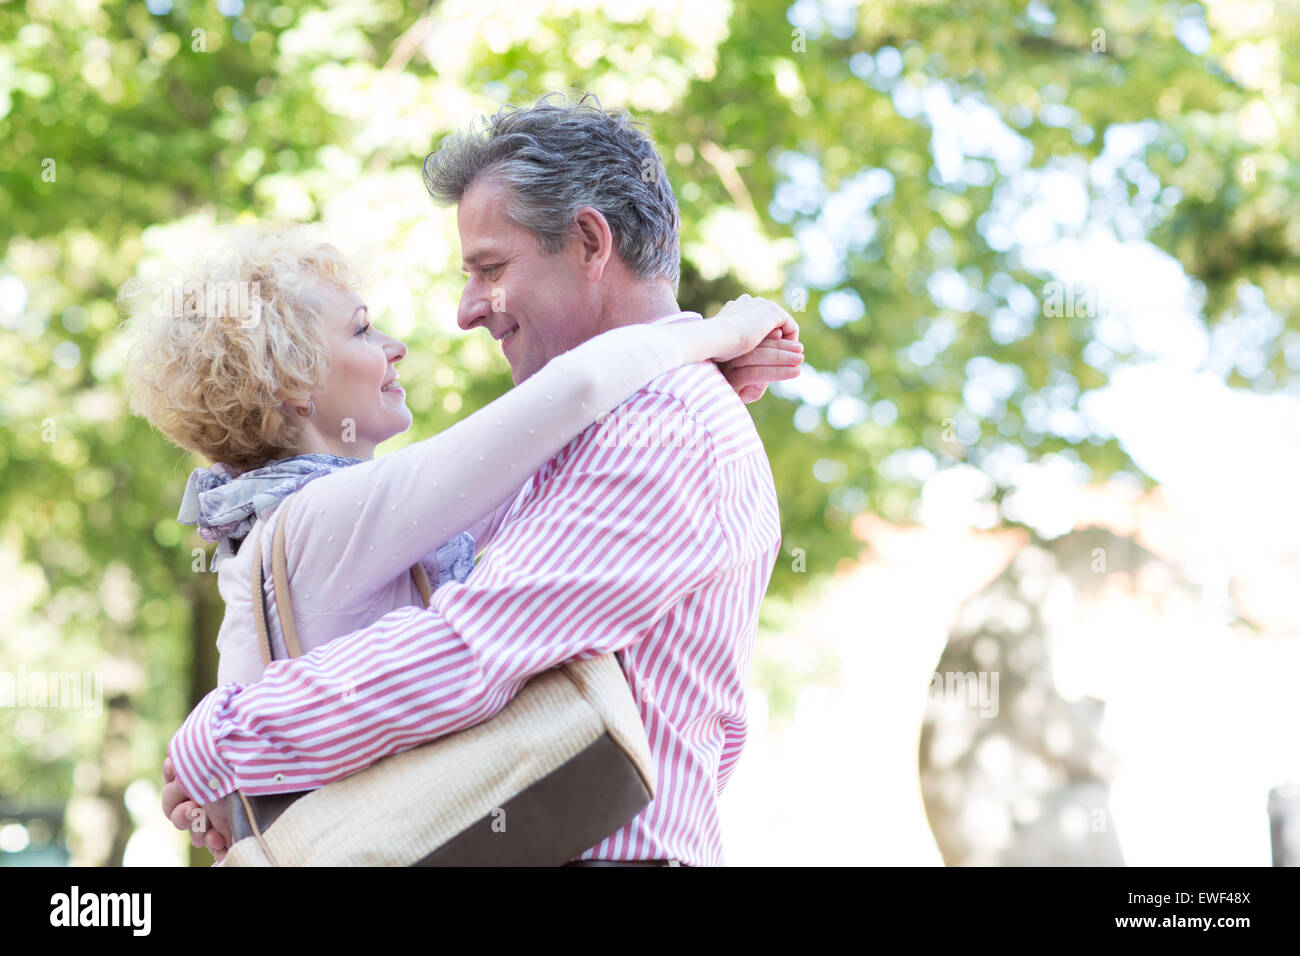 Side view of middle-aged couple embracing while looking at each other in park - Stock Image